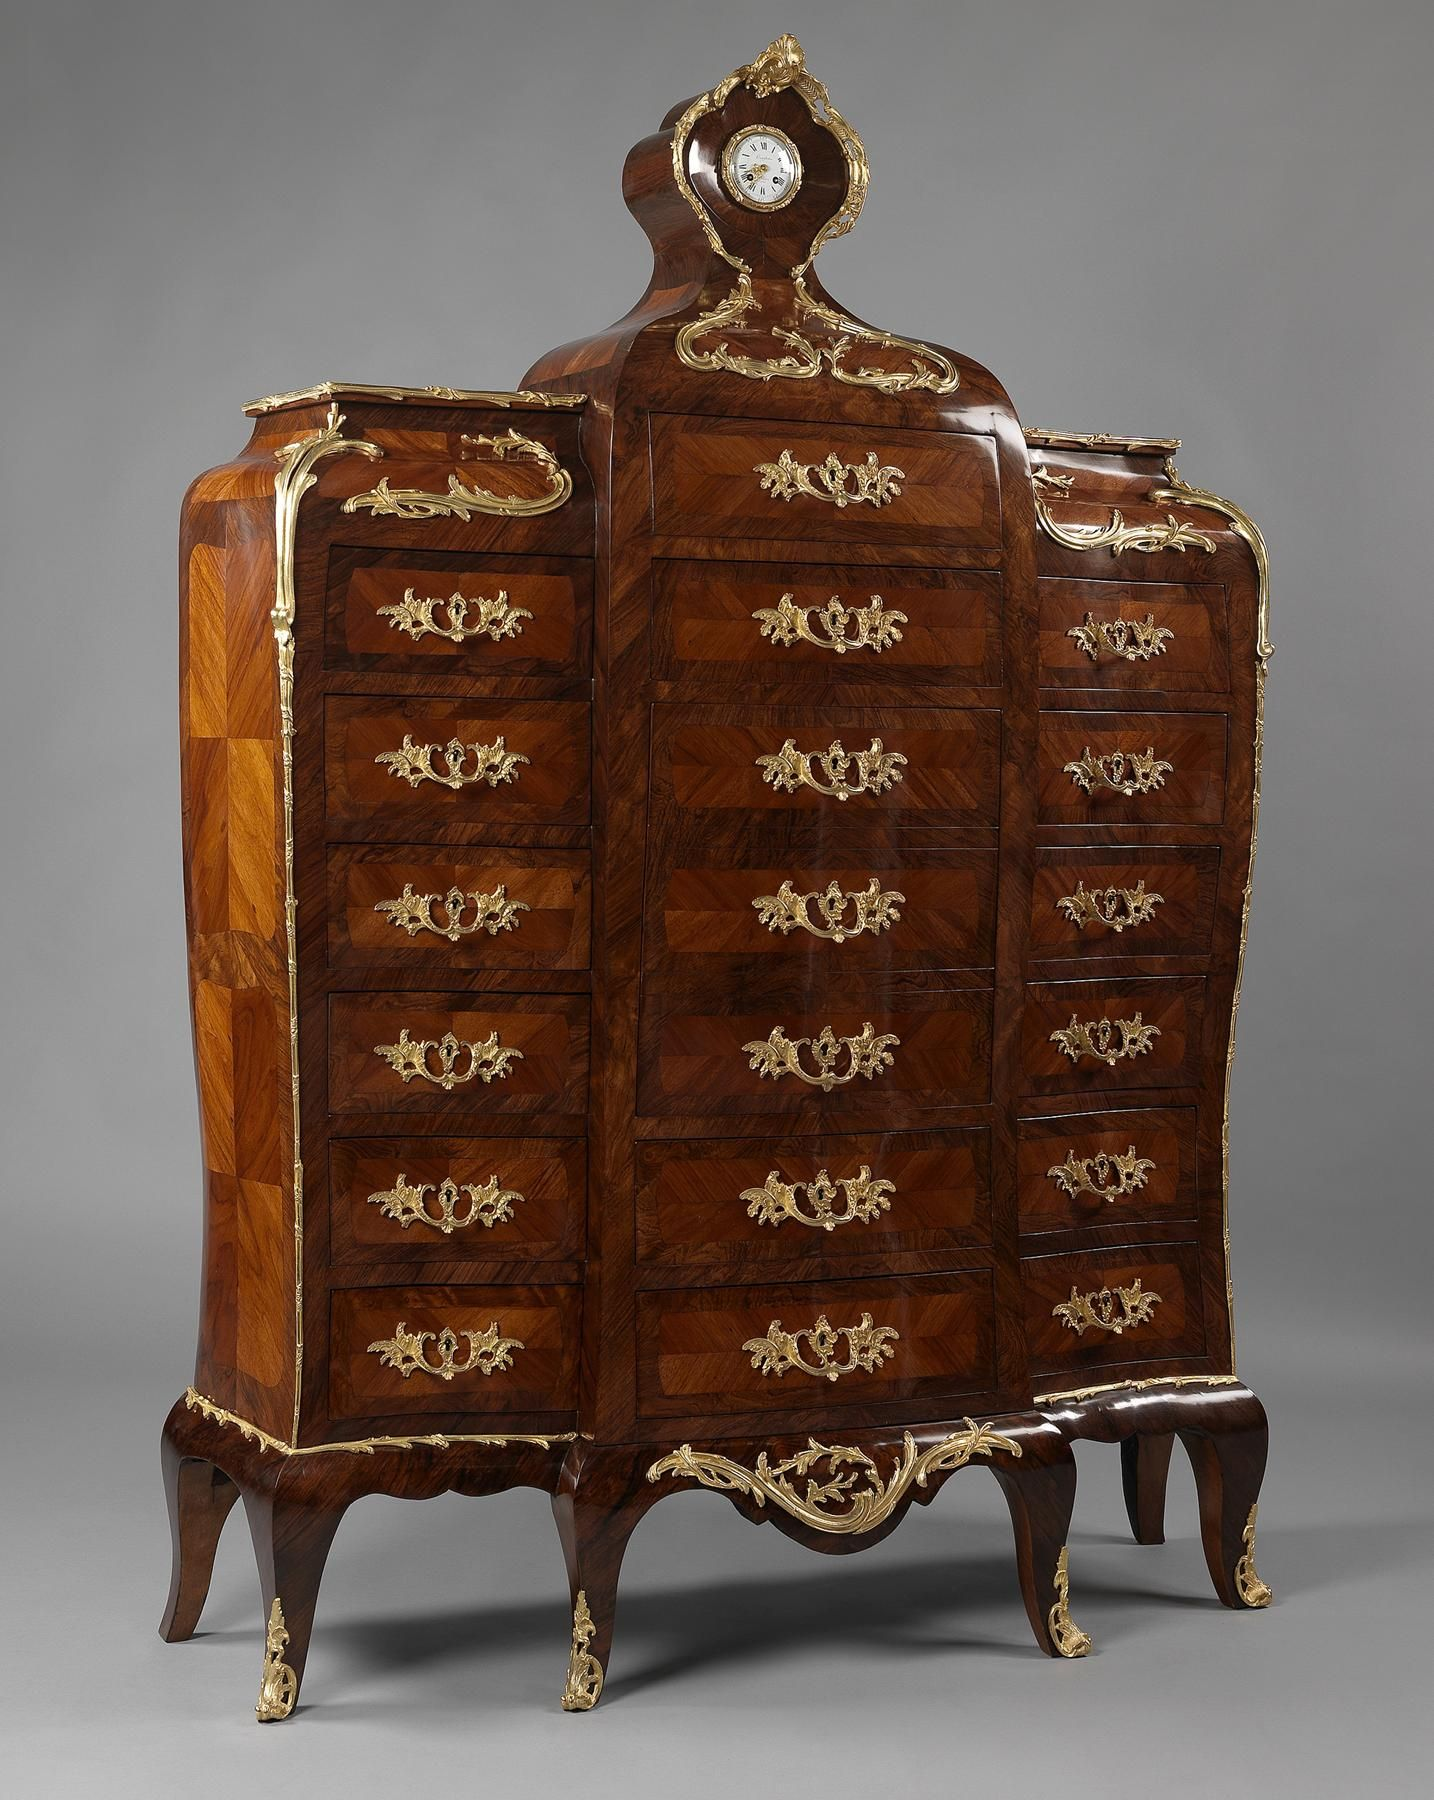 Pin By Ambre Marini Audouard On Antique Furniture Antique Furniture Victorian Furniture Elite Furniture